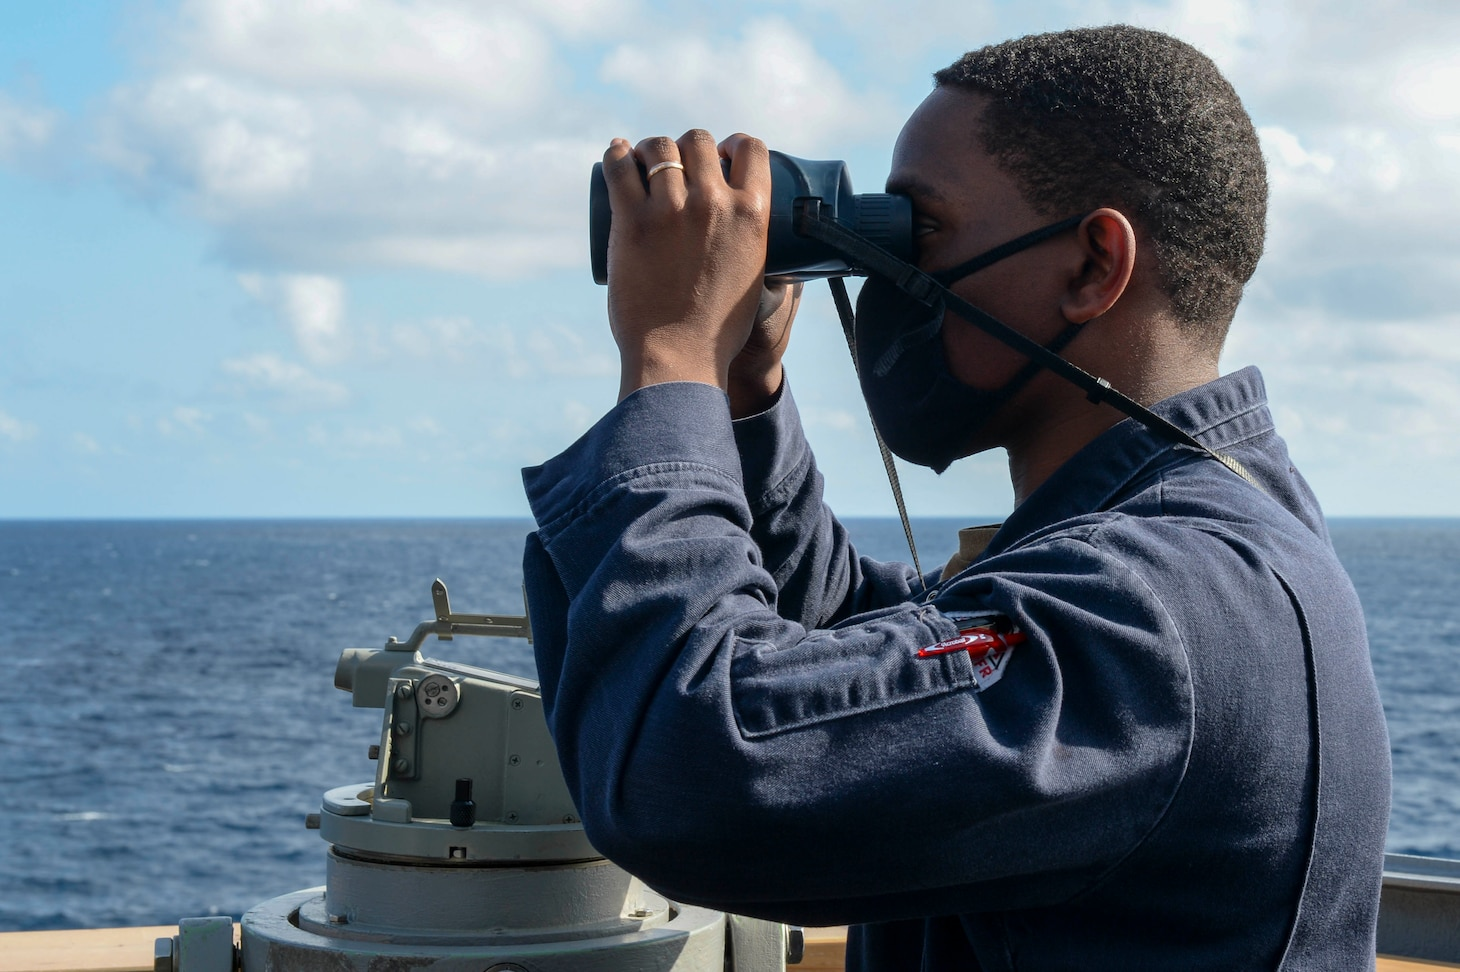 U.S. Navy Ensign Ryan Simpson, from Baltimore, looks through a pair of binoculars on the bridge wing as the guided-missile destroyer USS Russell (DDG 59) conducts routine underway operations.